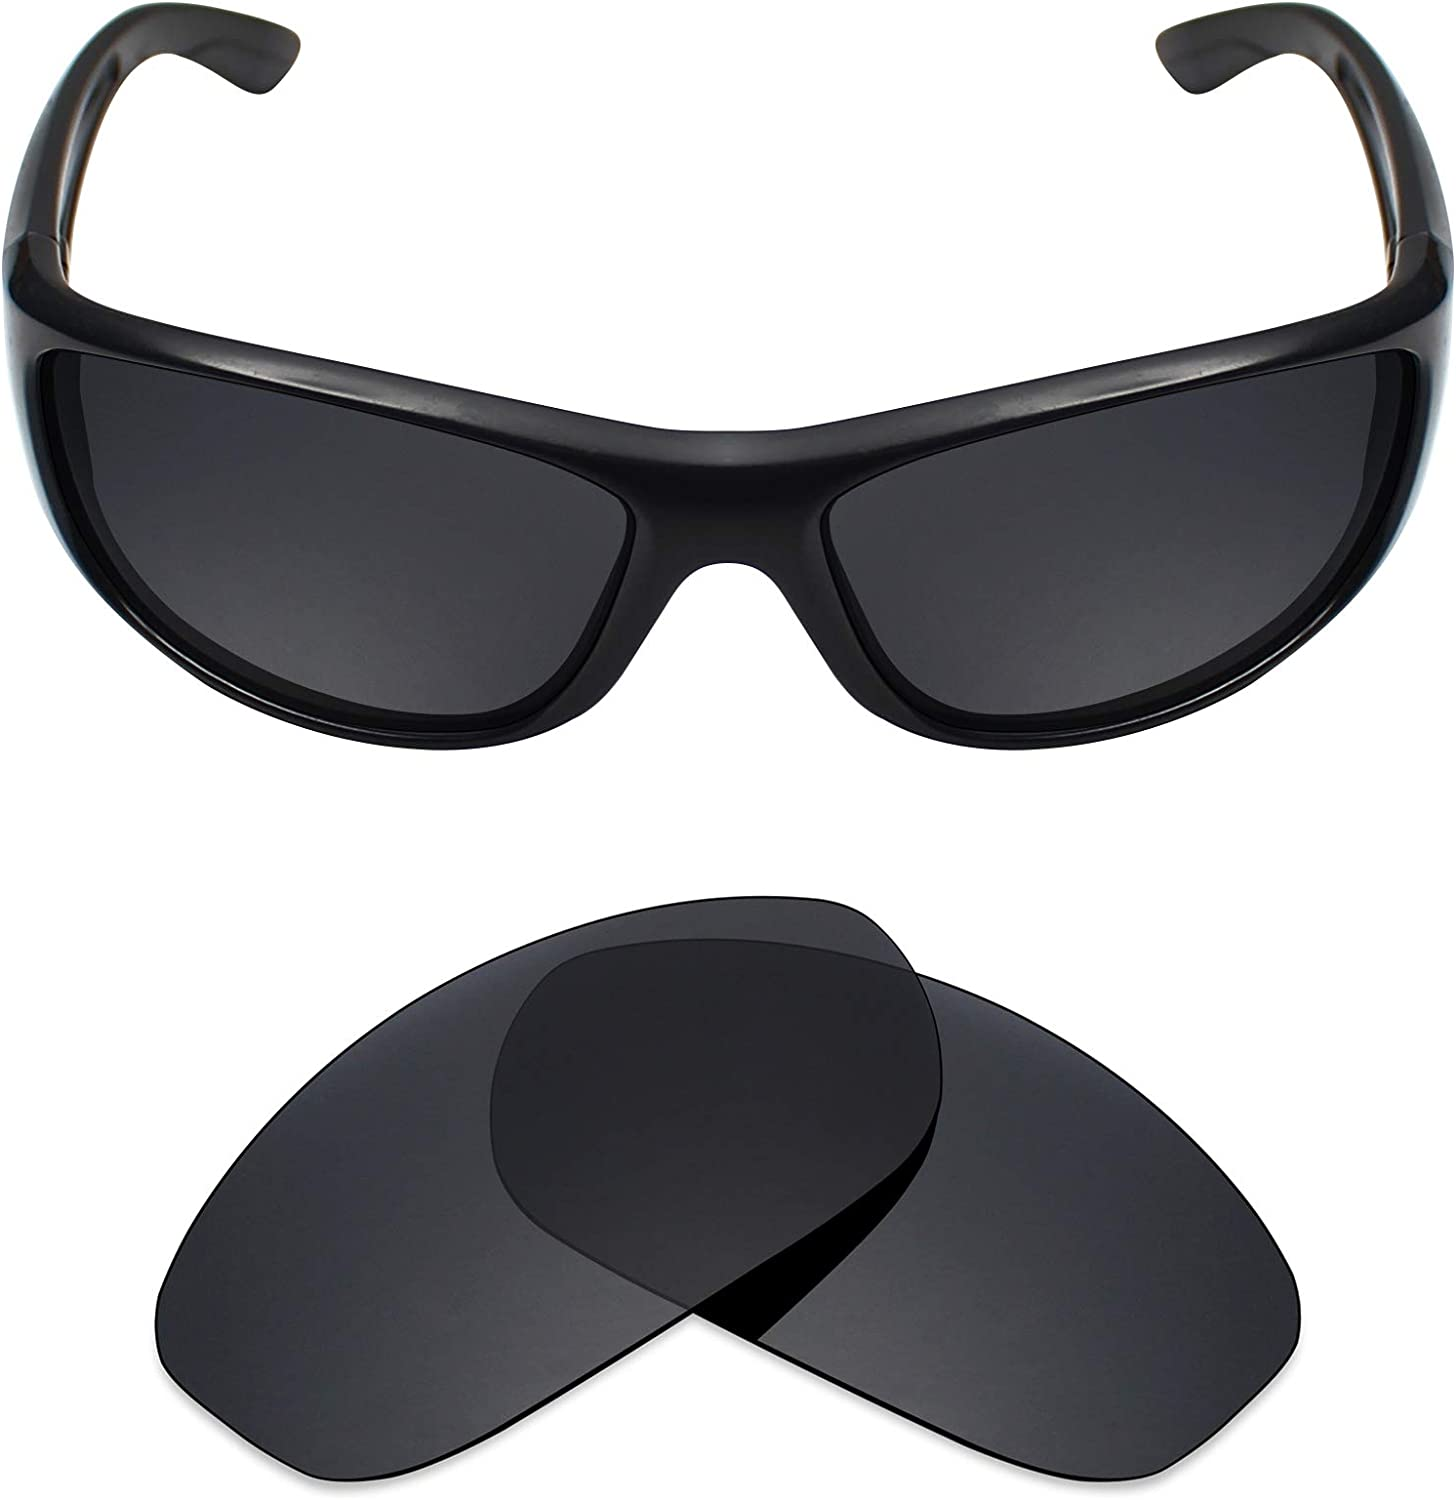 Mryok Replacement Lenses for Arnette Freezer AN4155 - Options